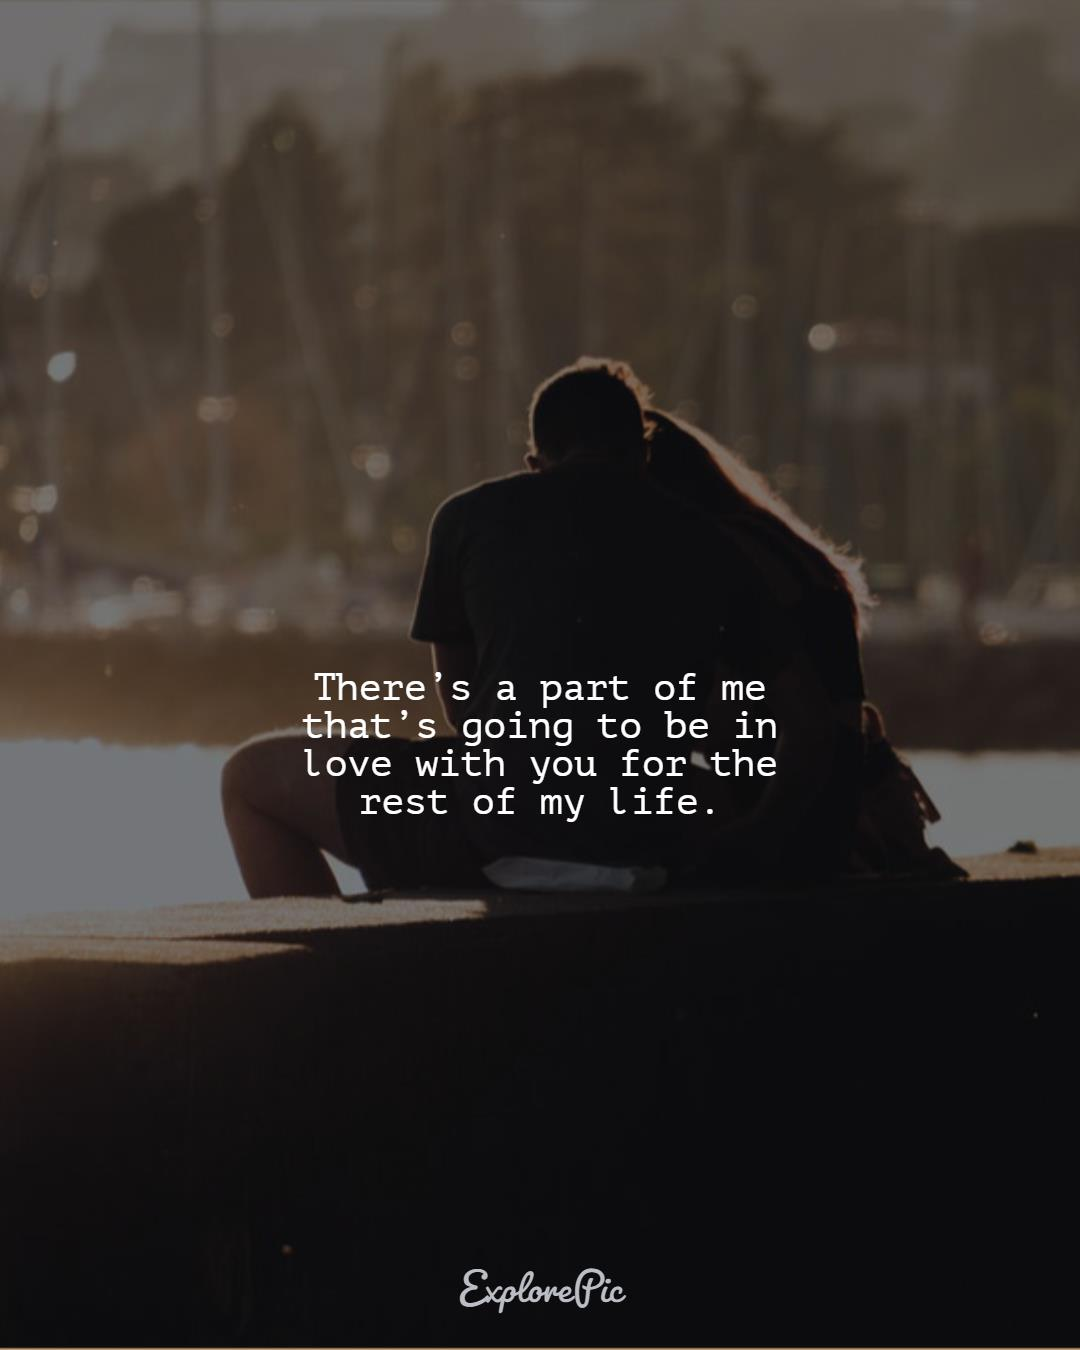 15 Broken Heart Quotes And Heartbroken Sayings - ExplorePic